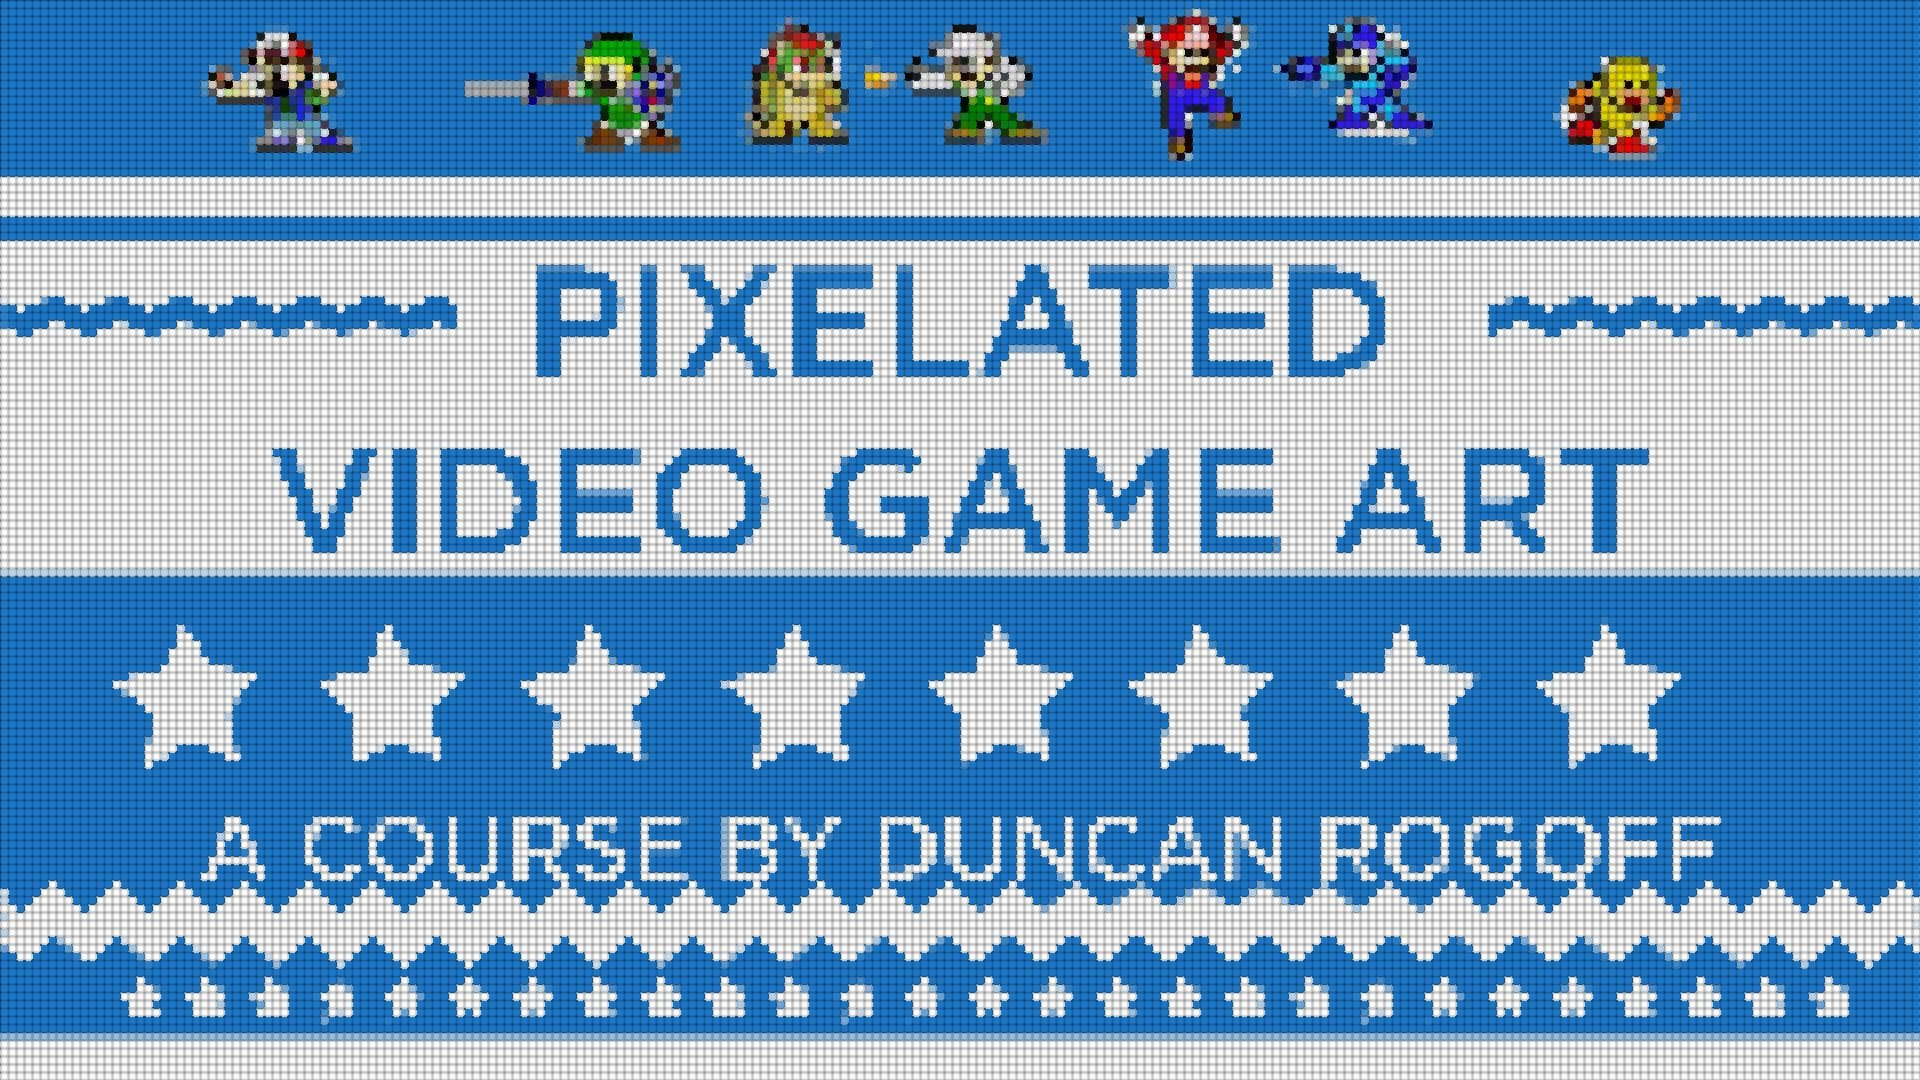 Adobe After Effects: A Step-By-Step Guide to Pixelated Video Game Art